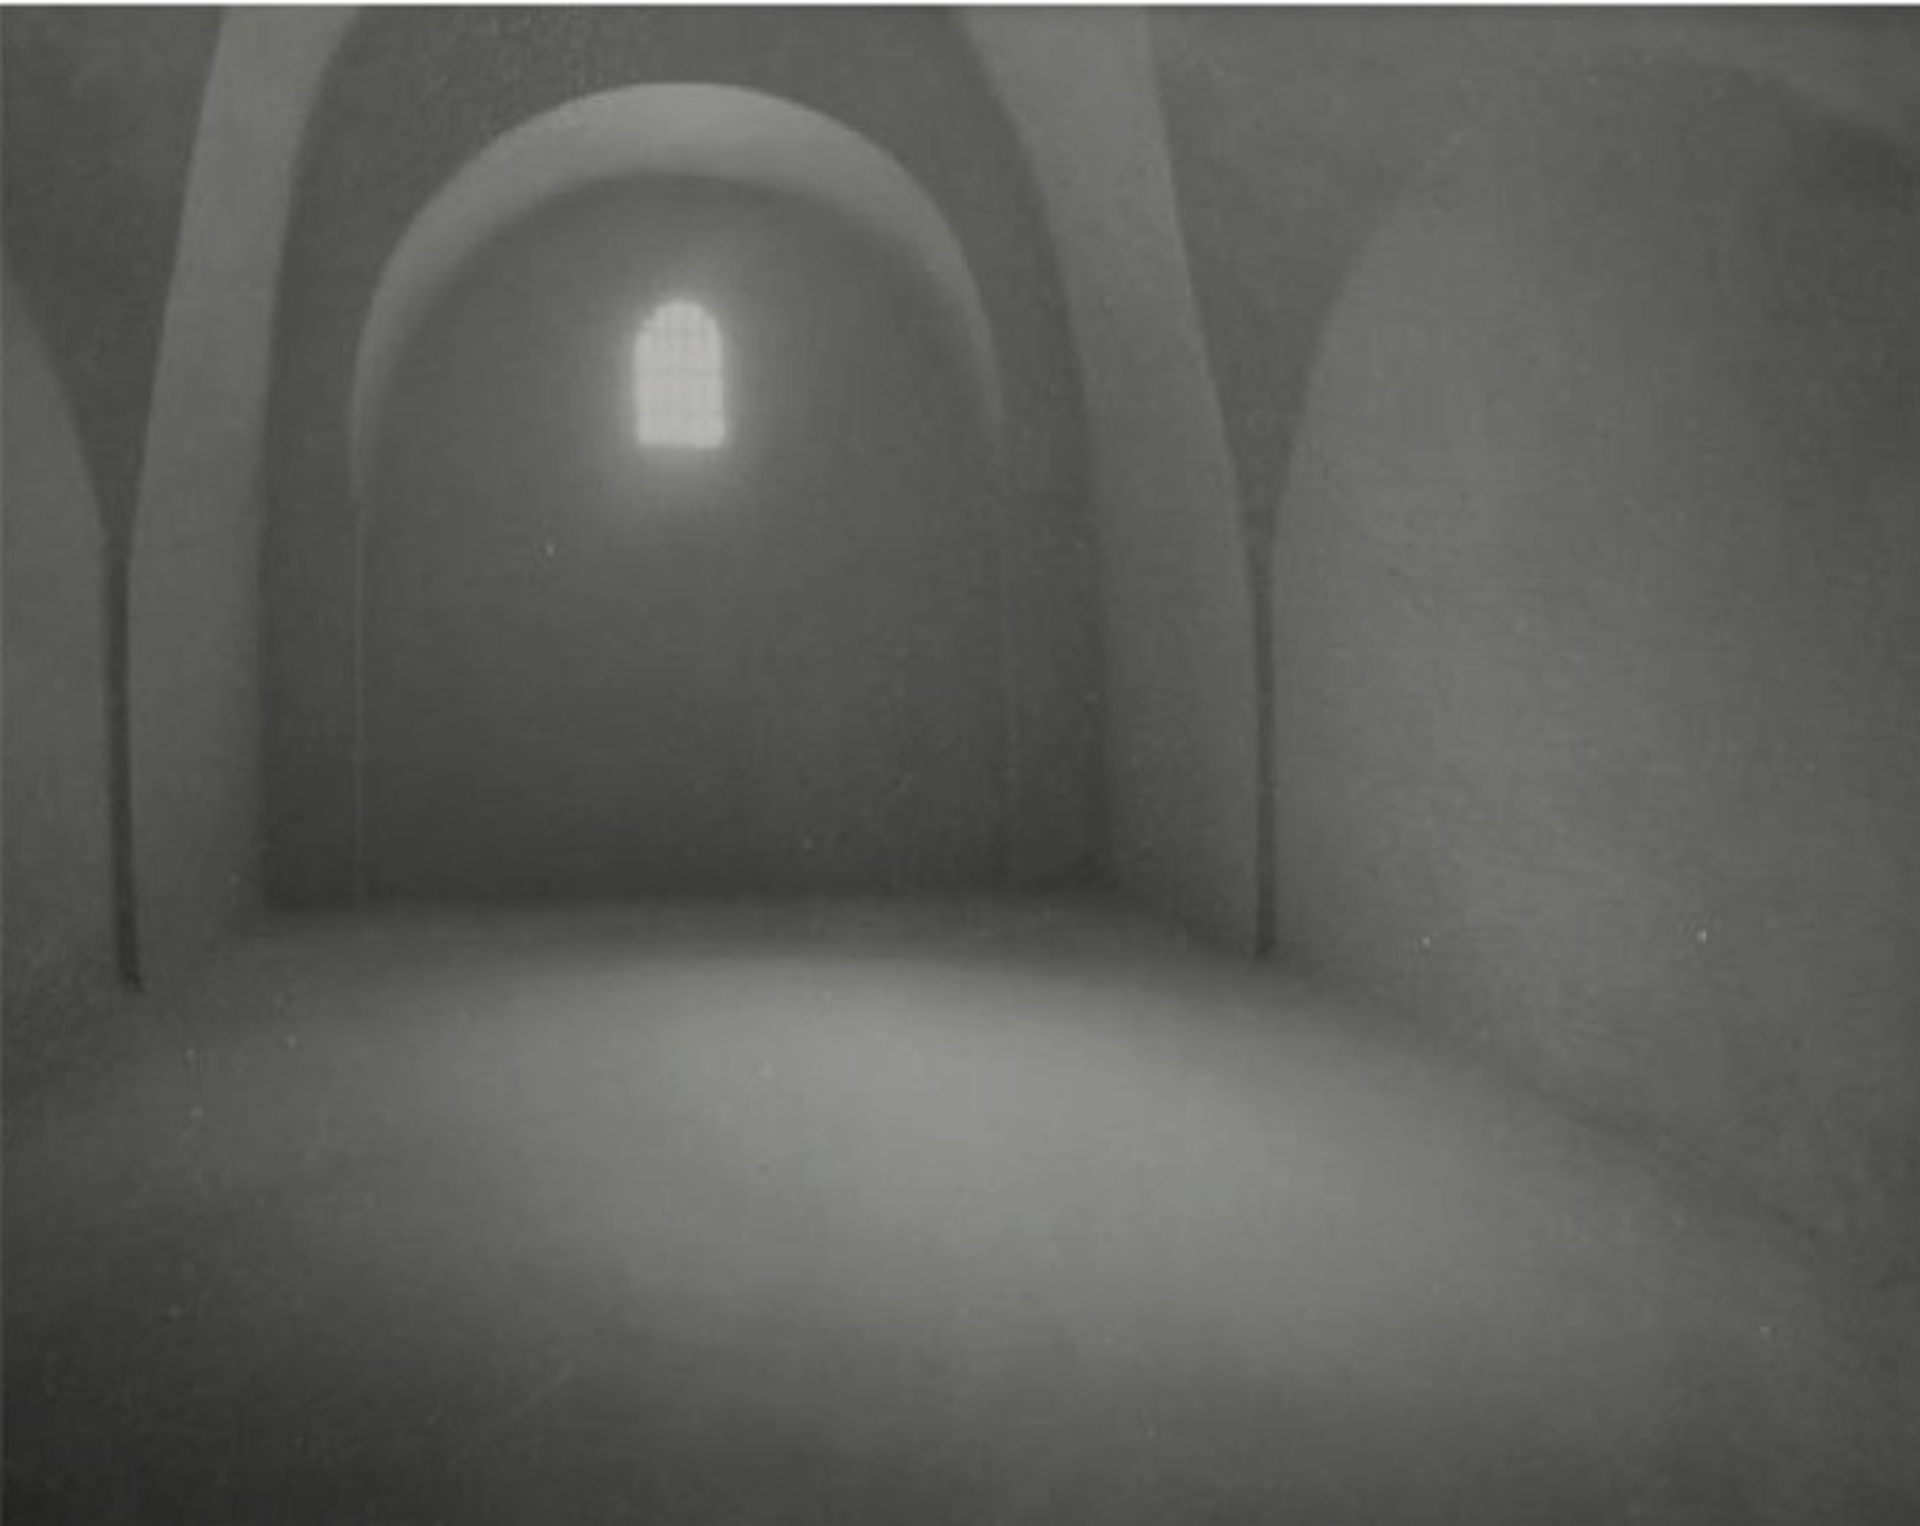 Study for The Empty Room by James Casebere